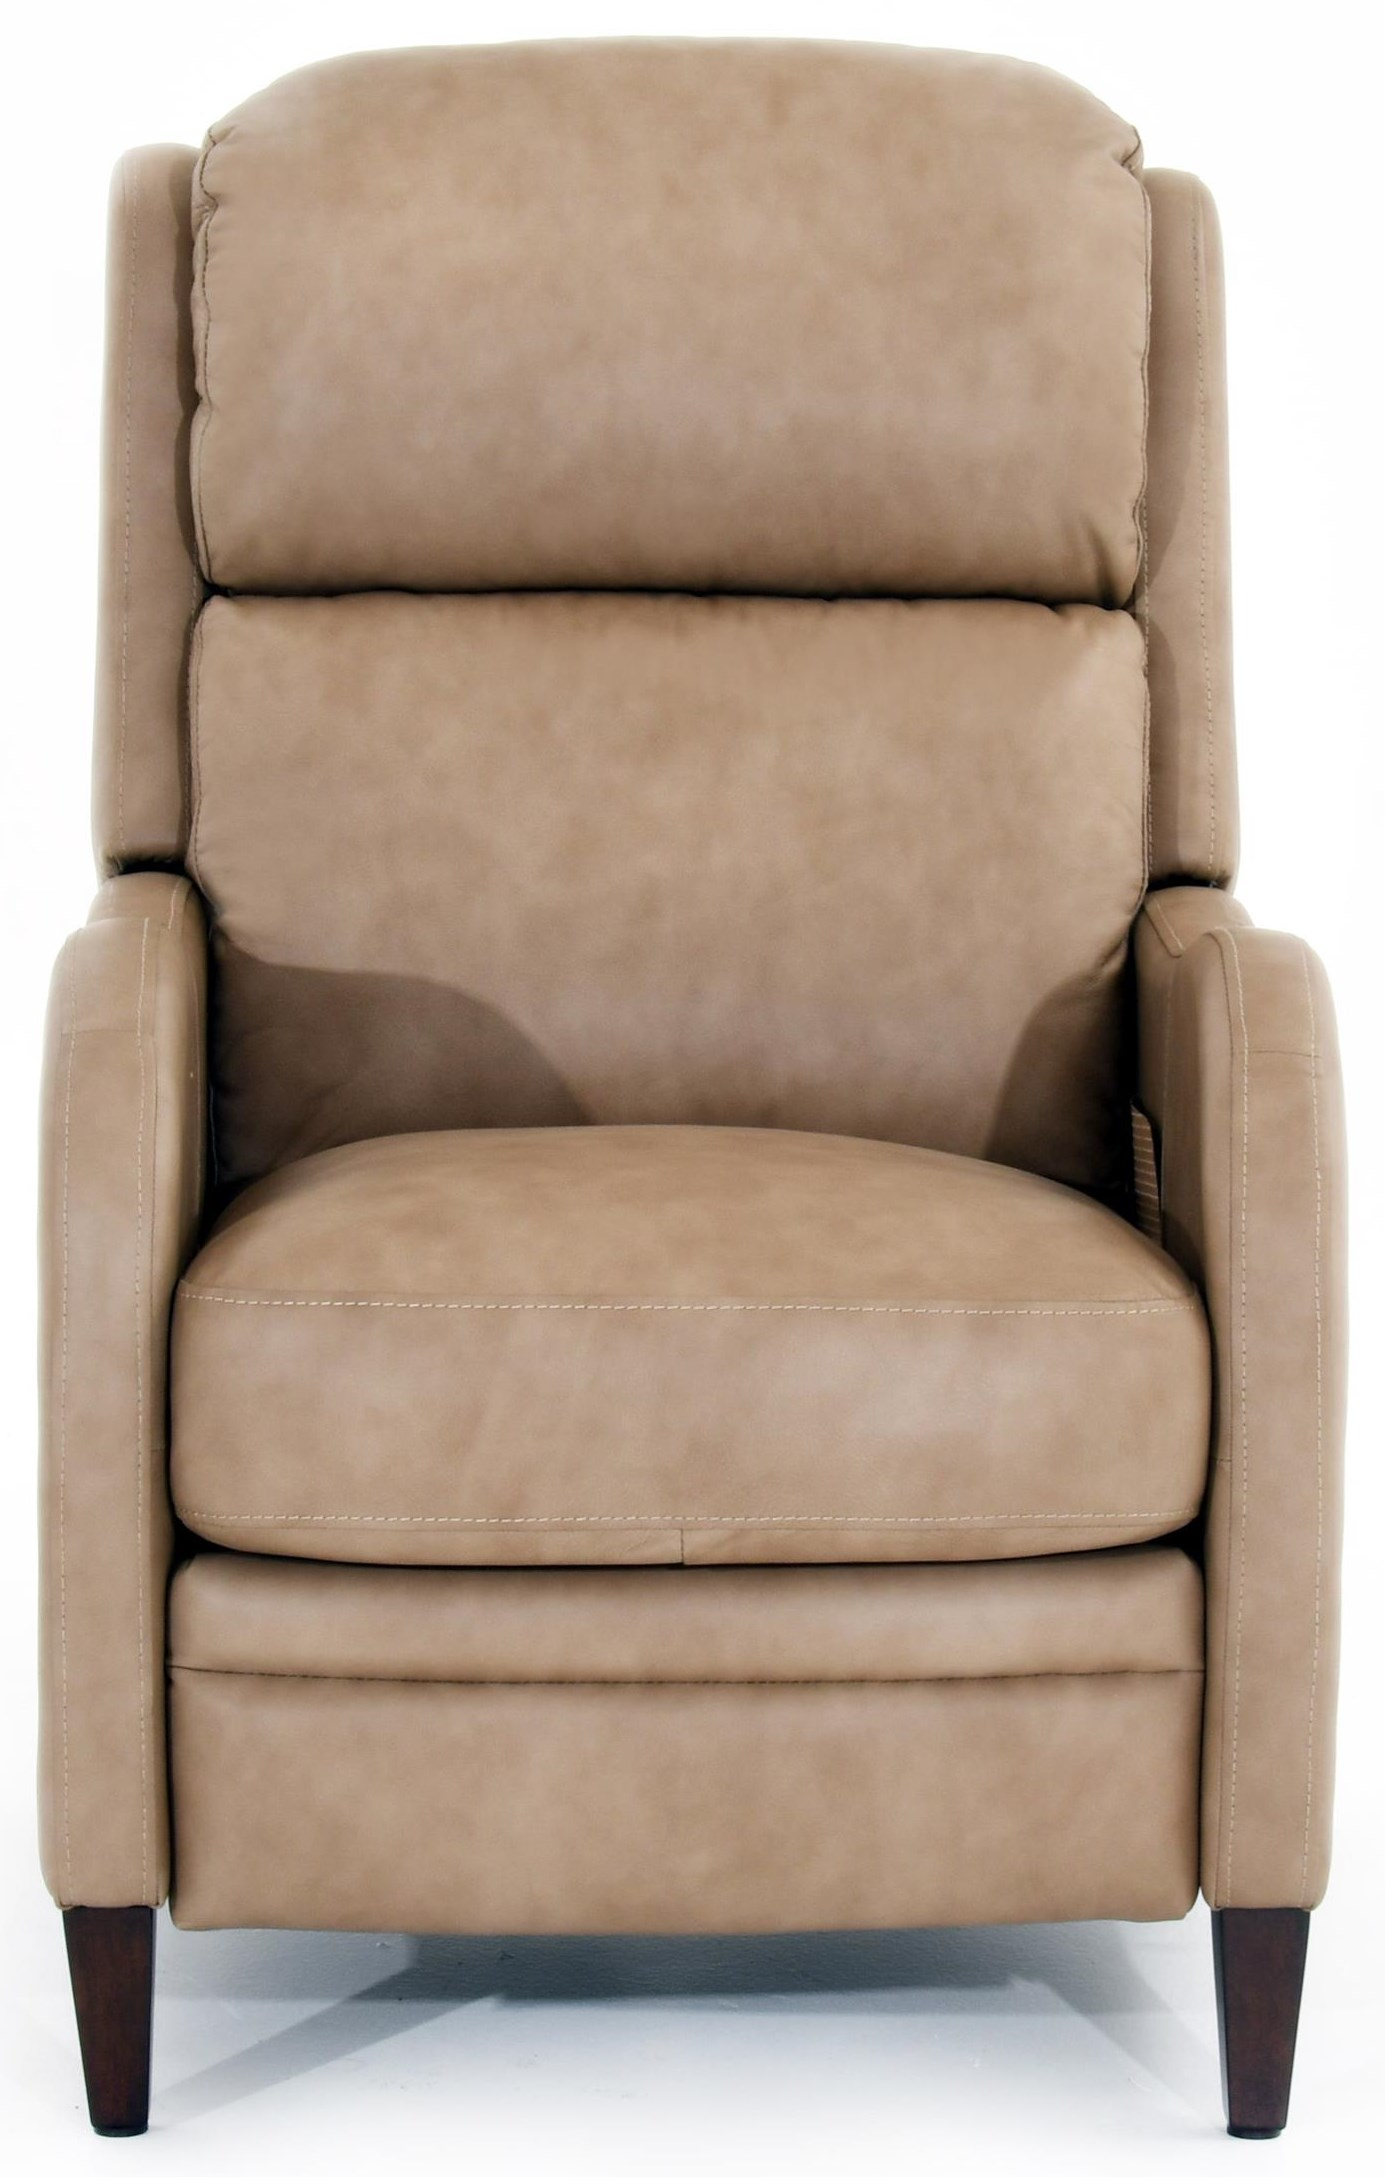 Recliners Wyndall Leather Power Recliner by Olivia & Quinn at Baer's Furniture